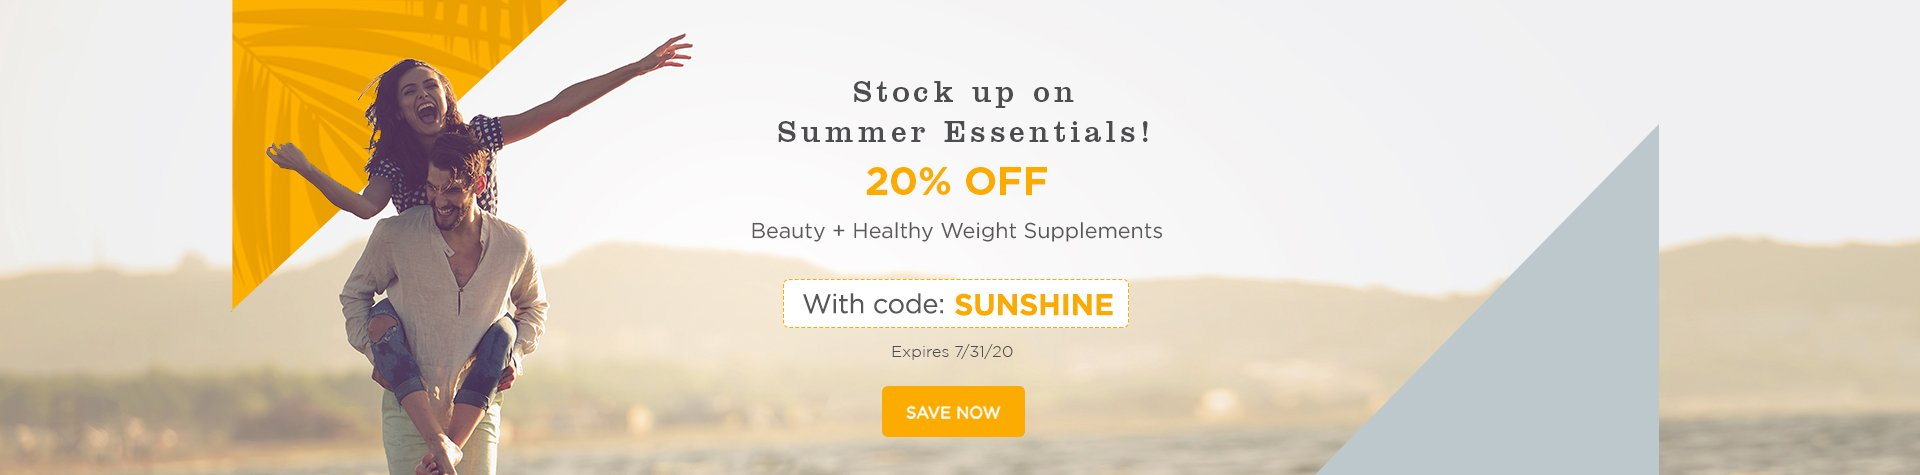 20% OFF Beauty & Healthy Weight Supplements